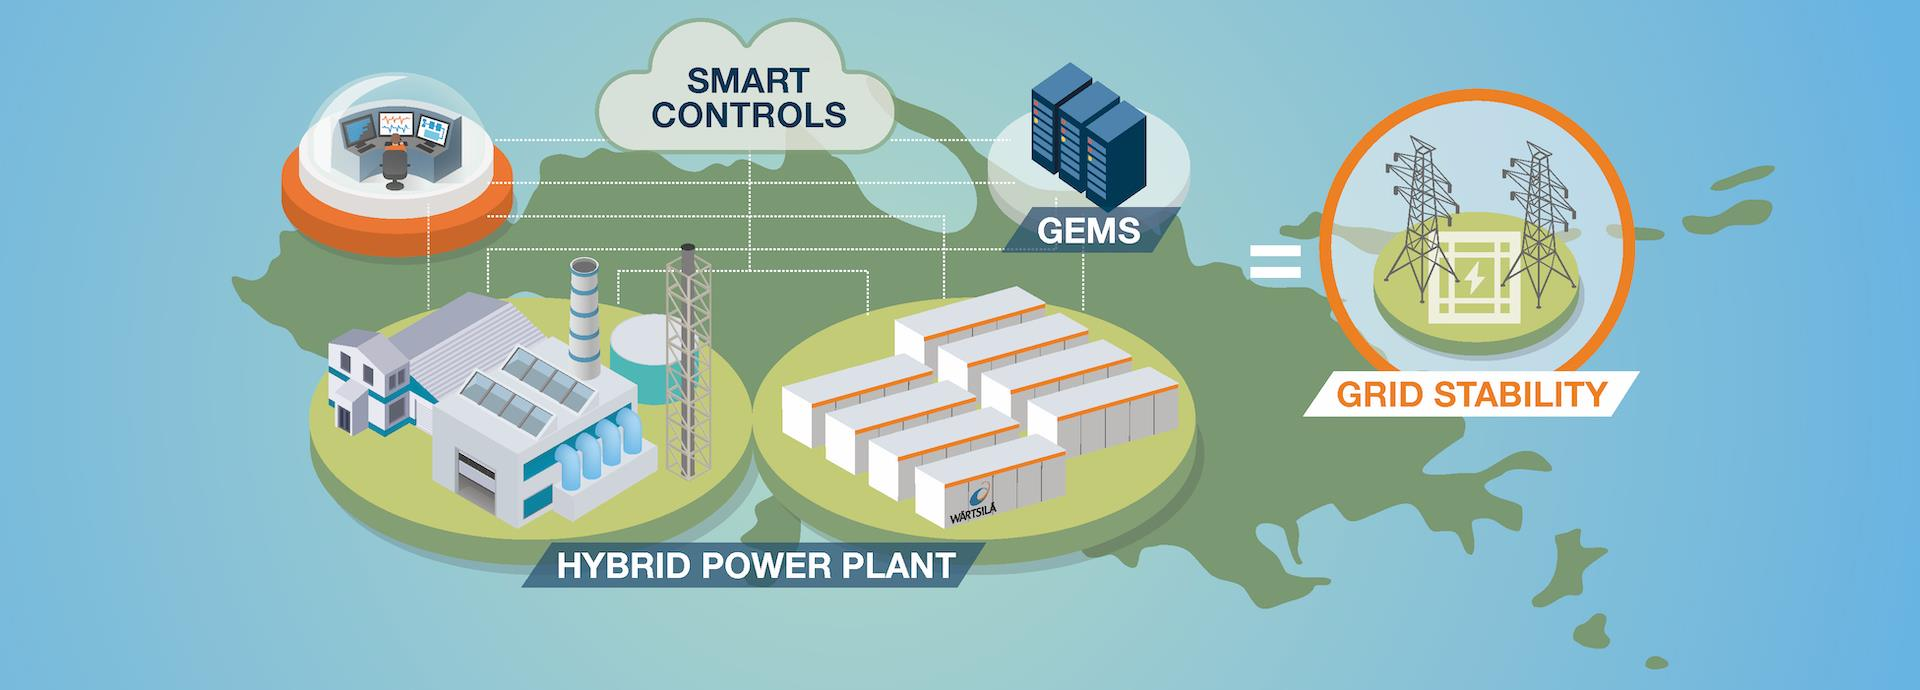 Hybrid power plant with GEMS infographic